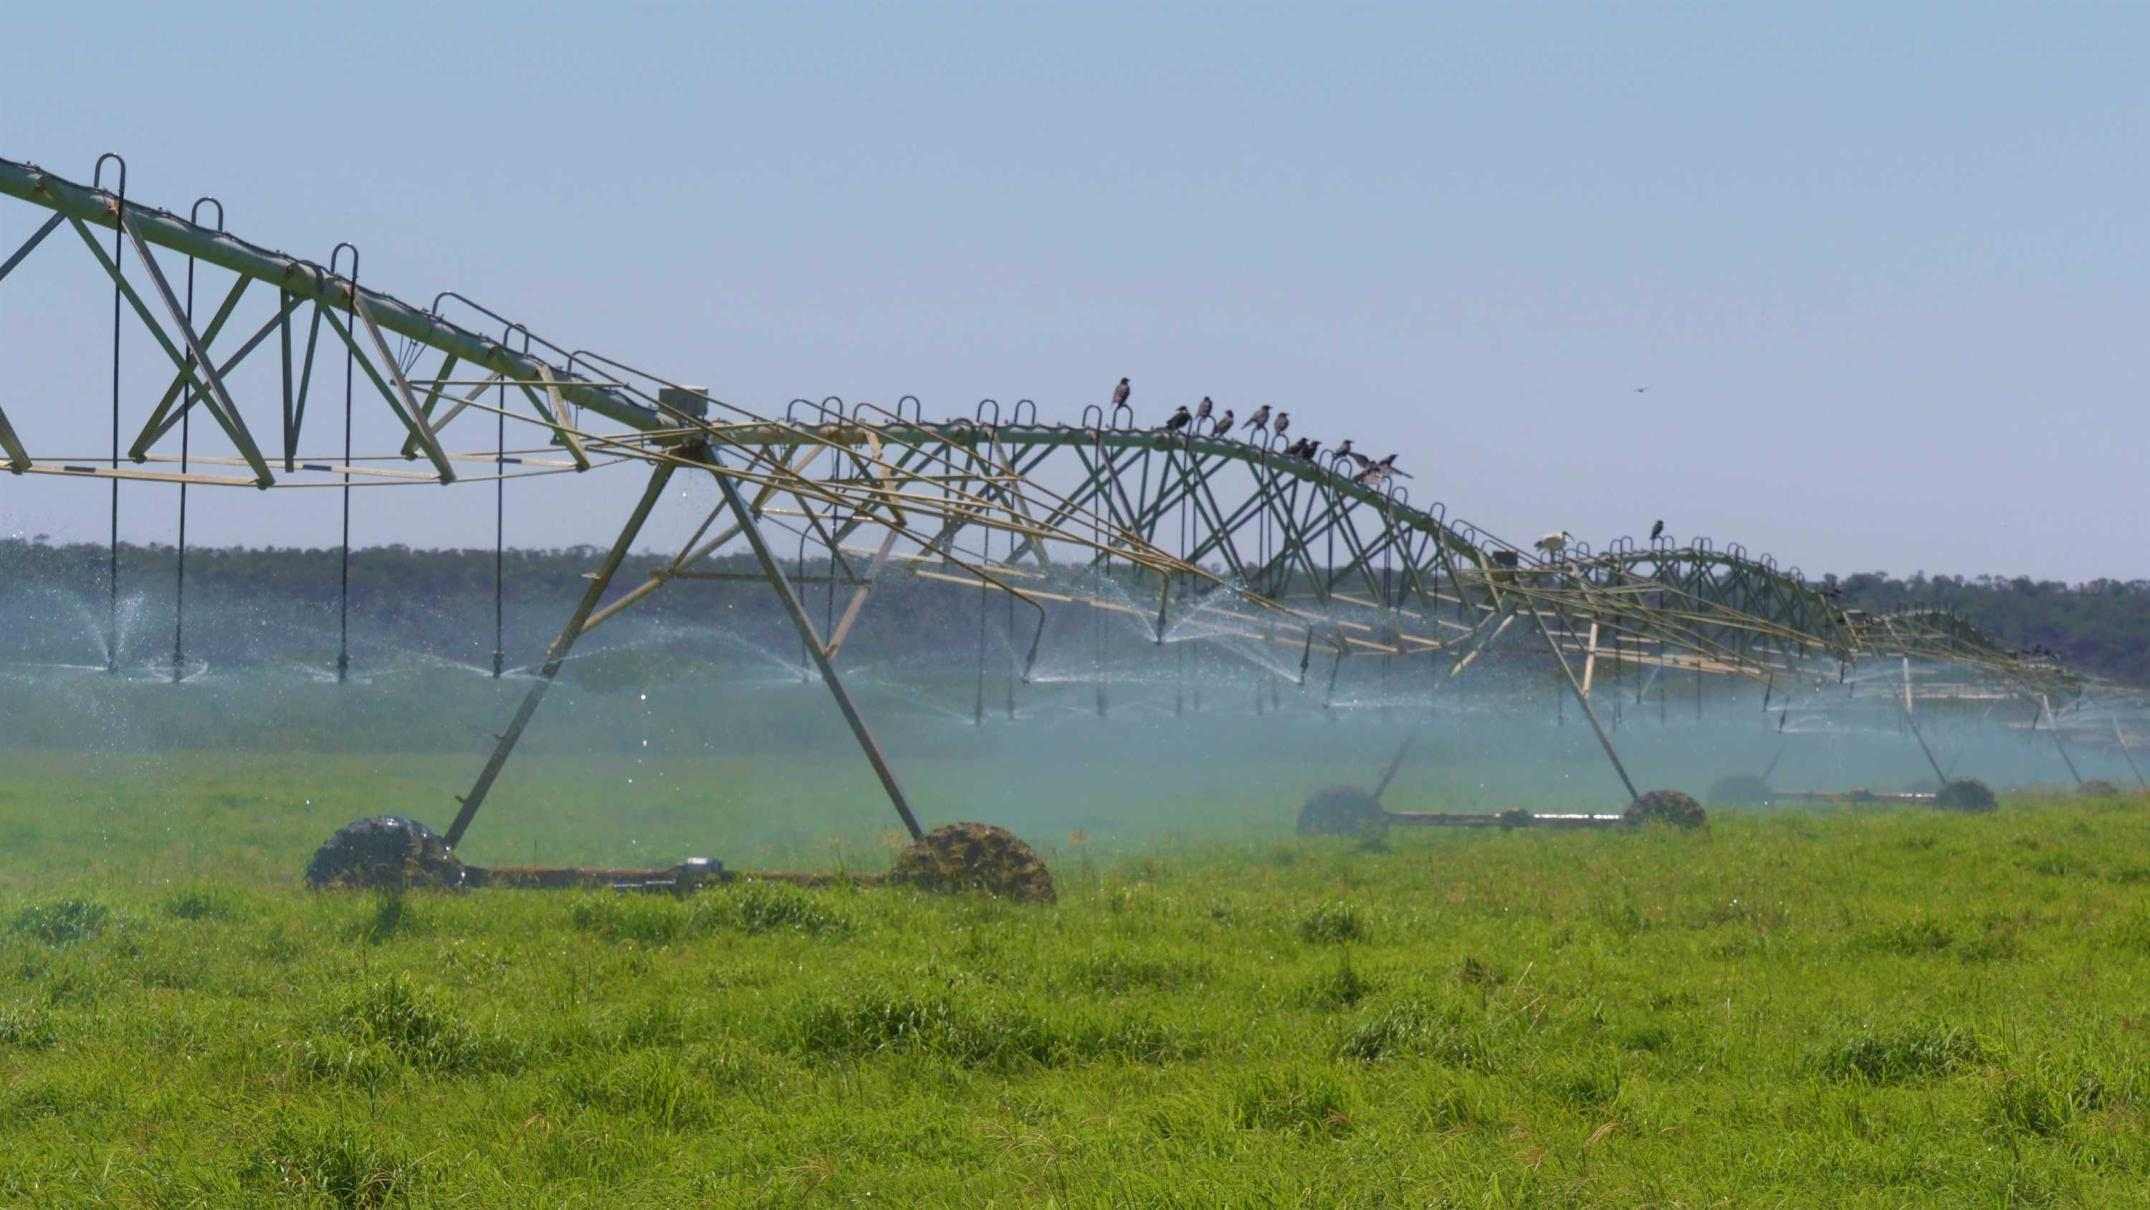 water-the-key-as-outback-queensland-town-strives-for-reversal-of-fortune